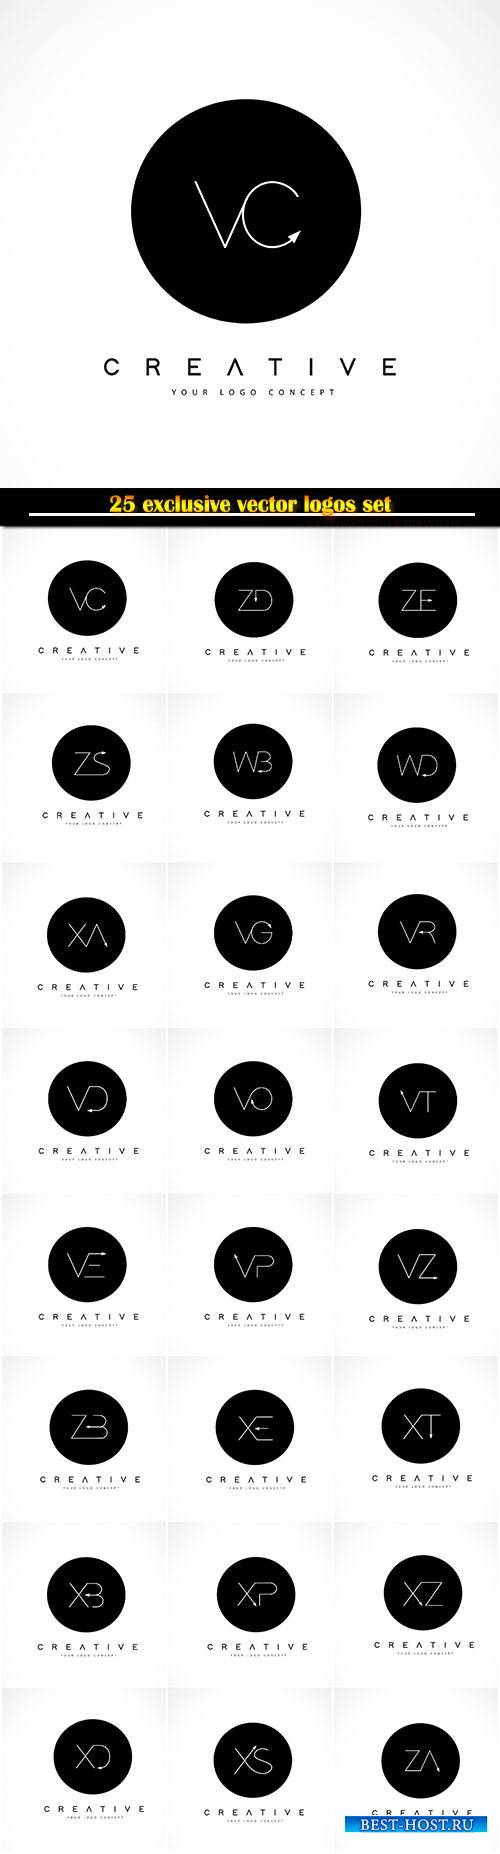 Logo vector design with black and white creative text letter